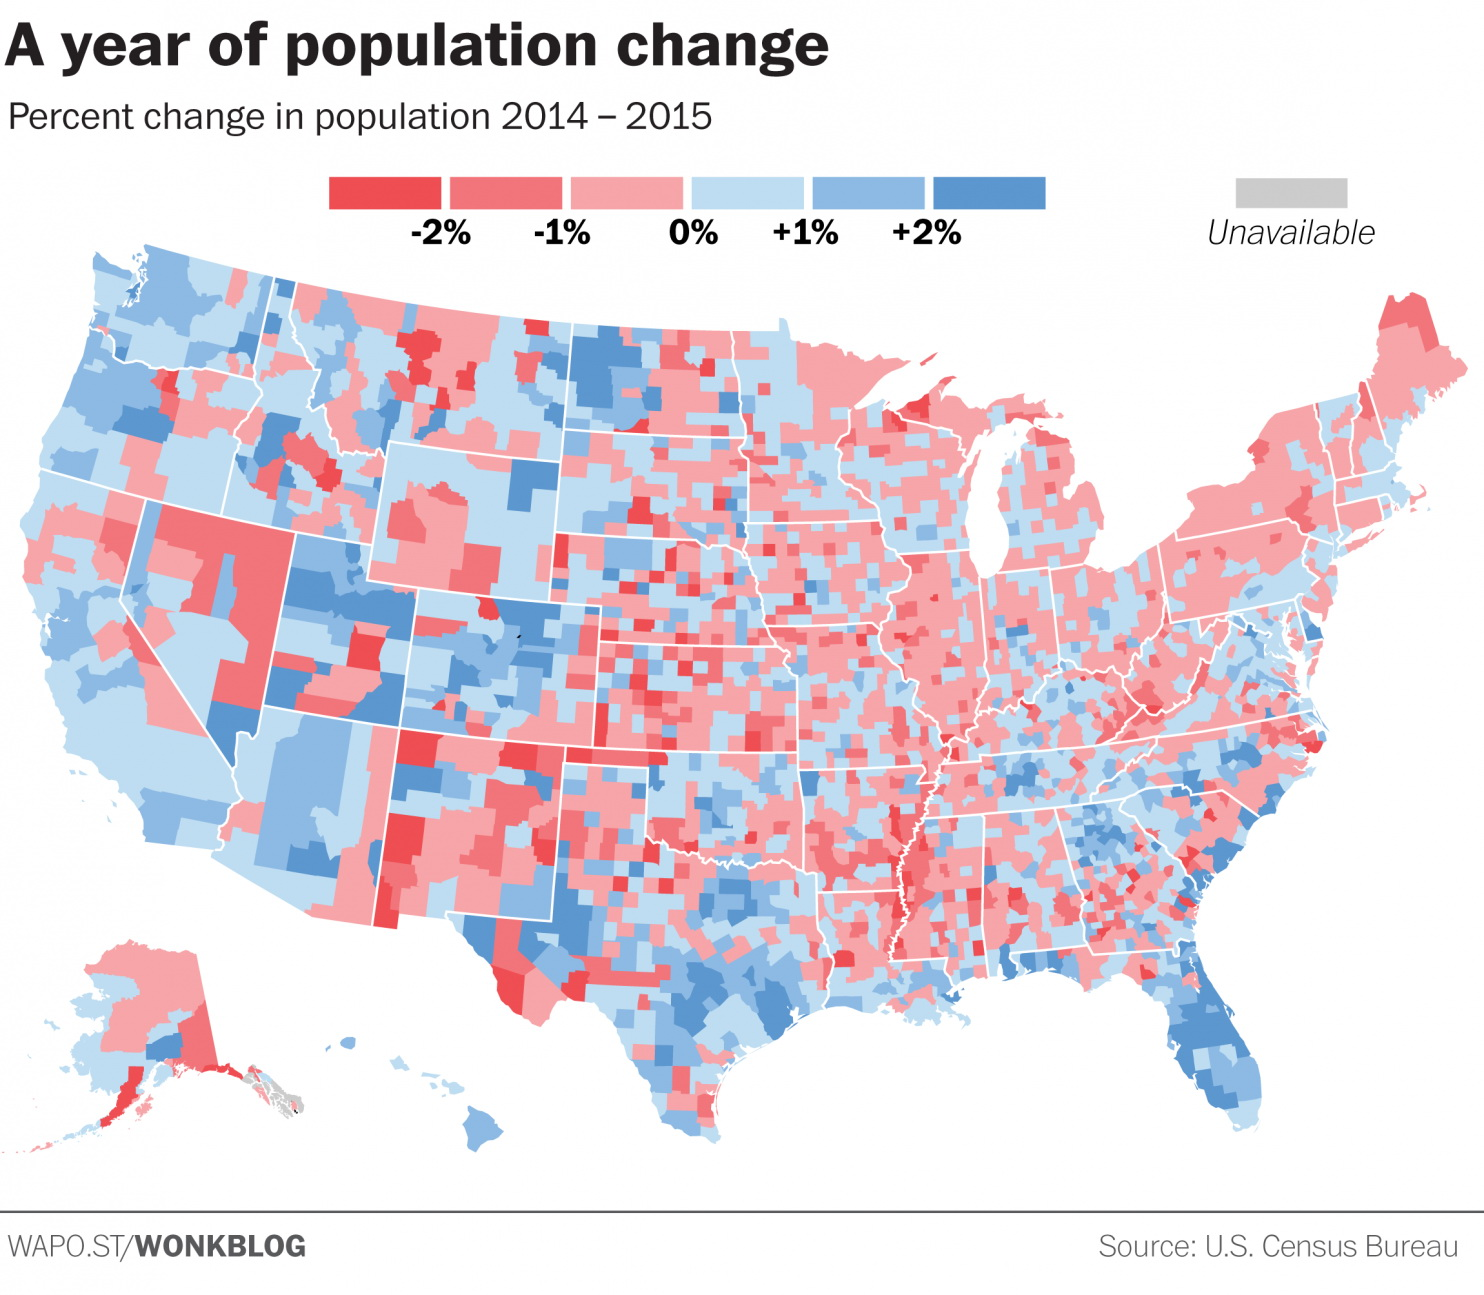 A year of population change